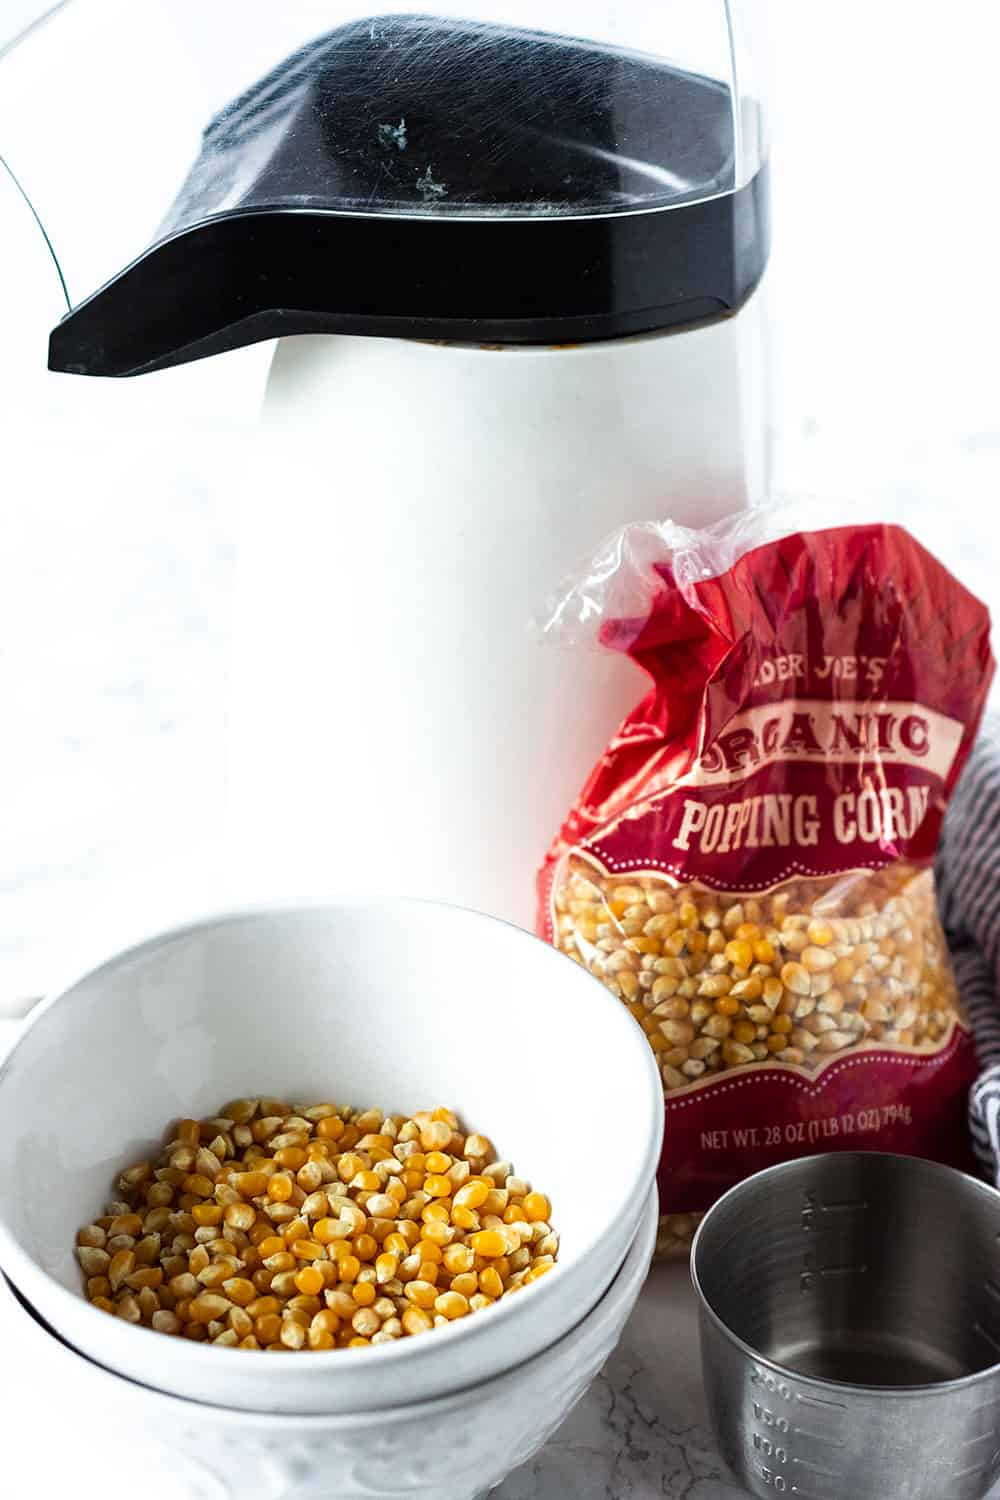 Vegan Popcorn ingredients, pop corn machine, popcorn kernels